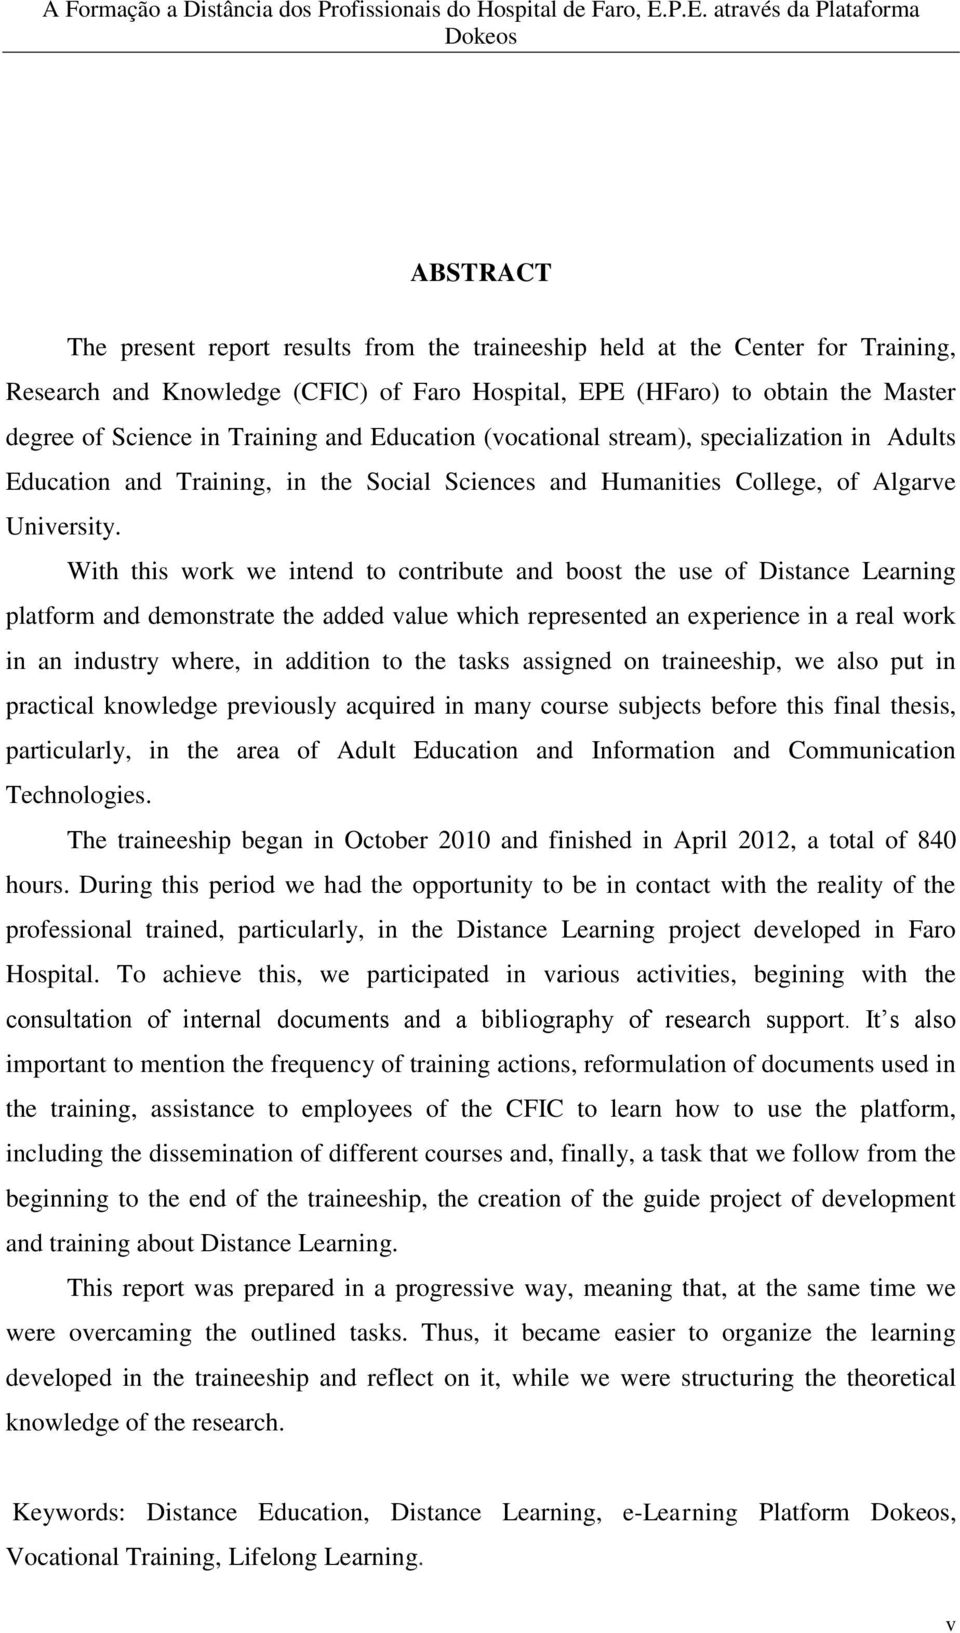 Master degree of Science in Training and Education (vocational stream), specialization in Adults Education and Training, in the Social Sciences and Humanities College, of Algarve University.